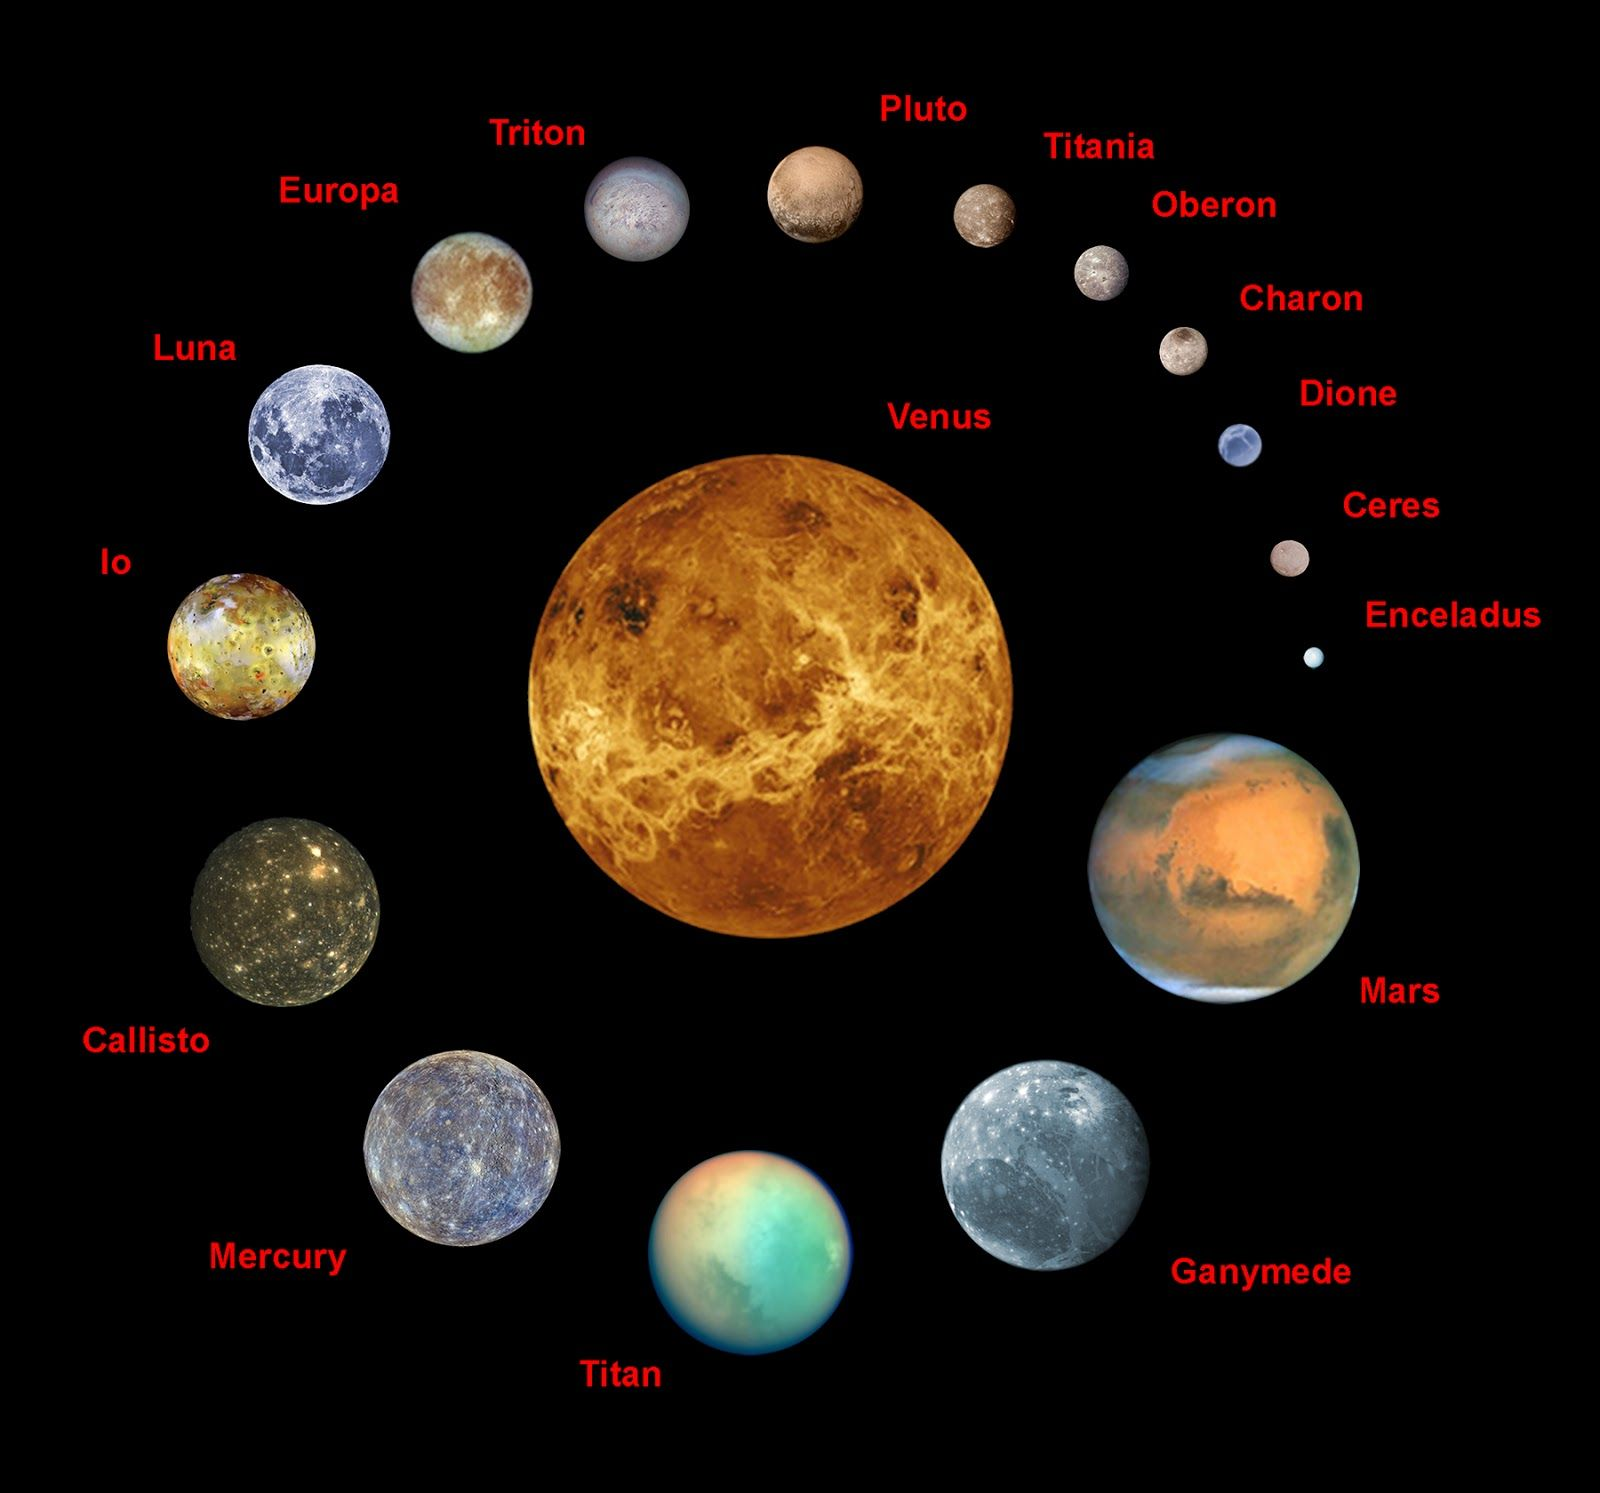 This figure represents 3 of the 4 terrestrial planets 2